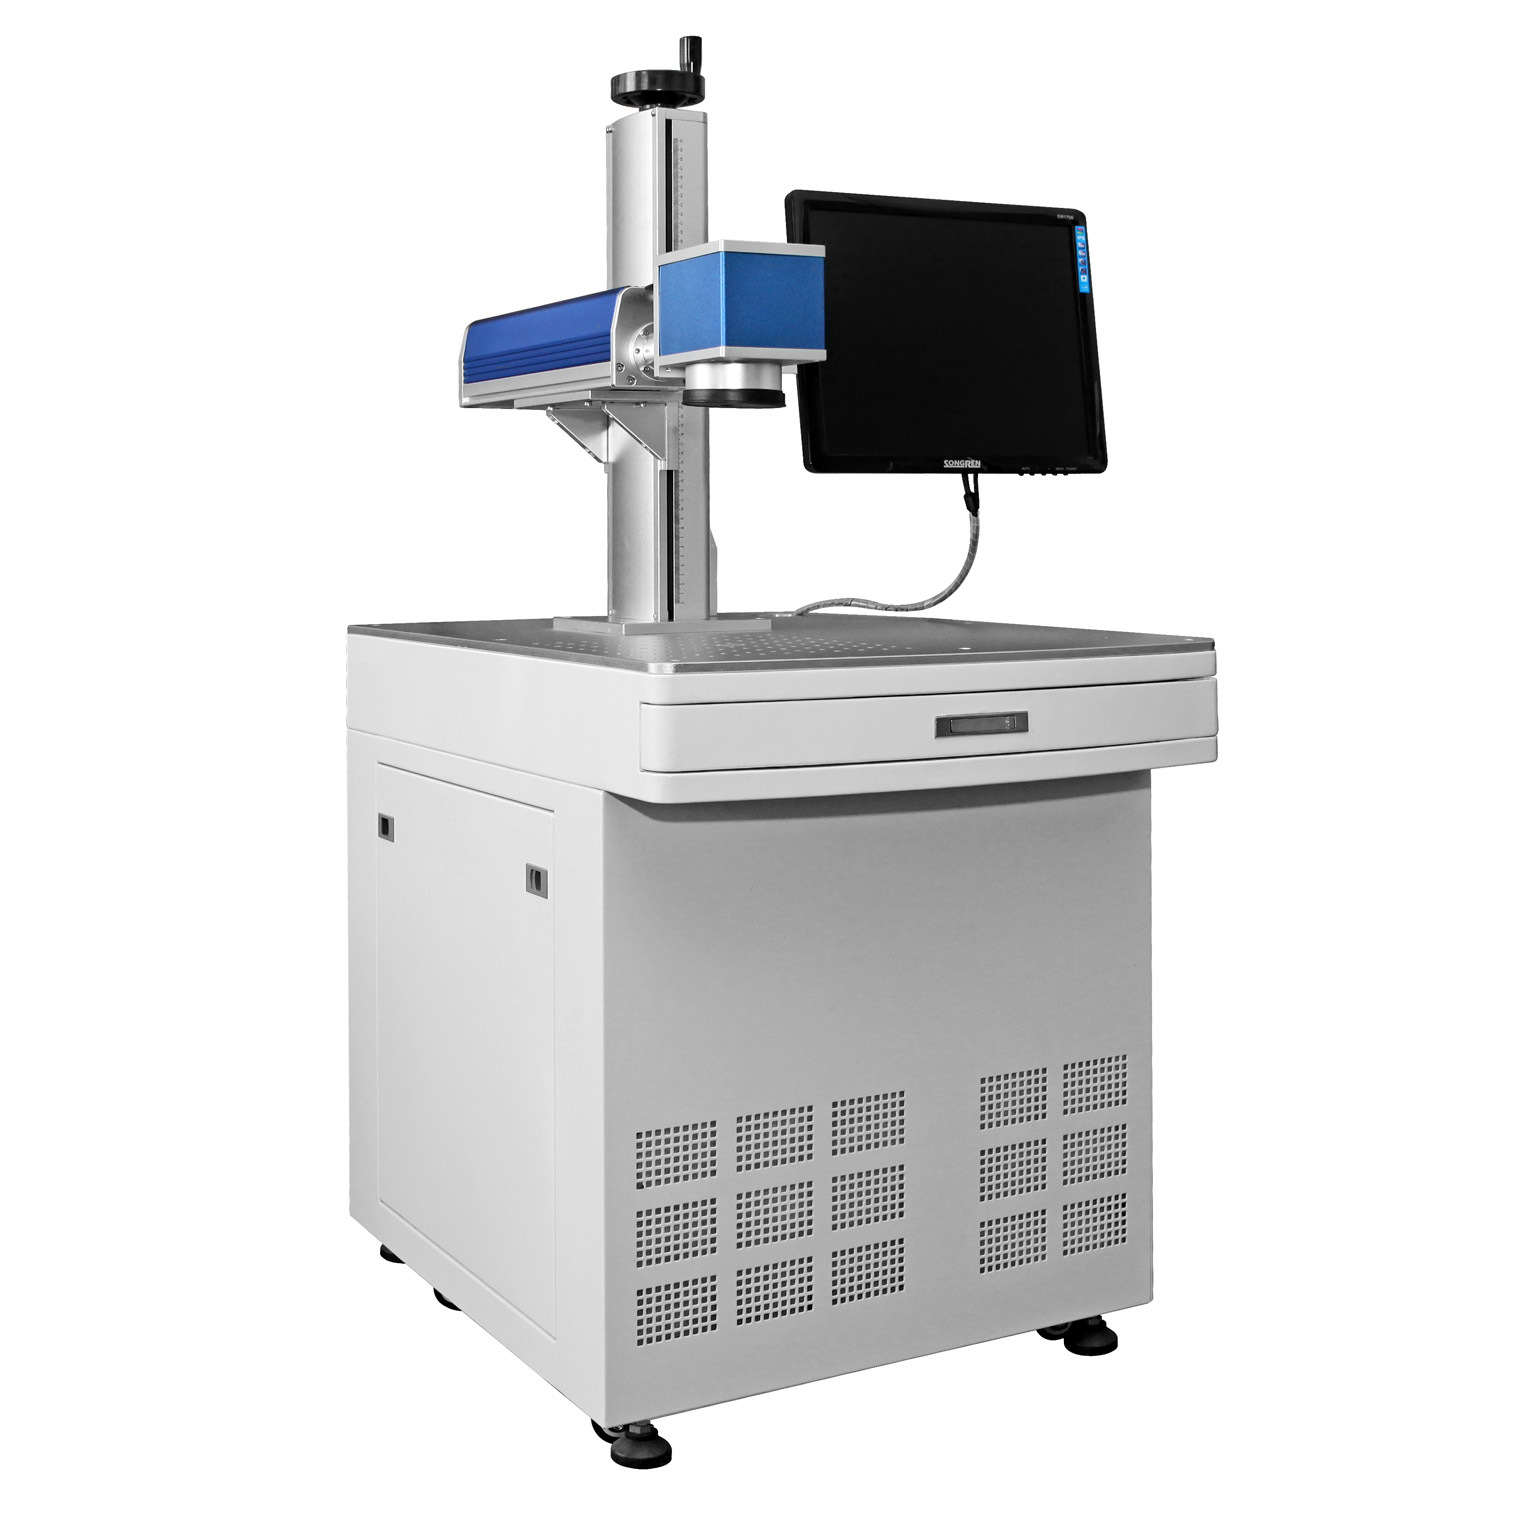 CO2 Laser Marking Machine for Leather